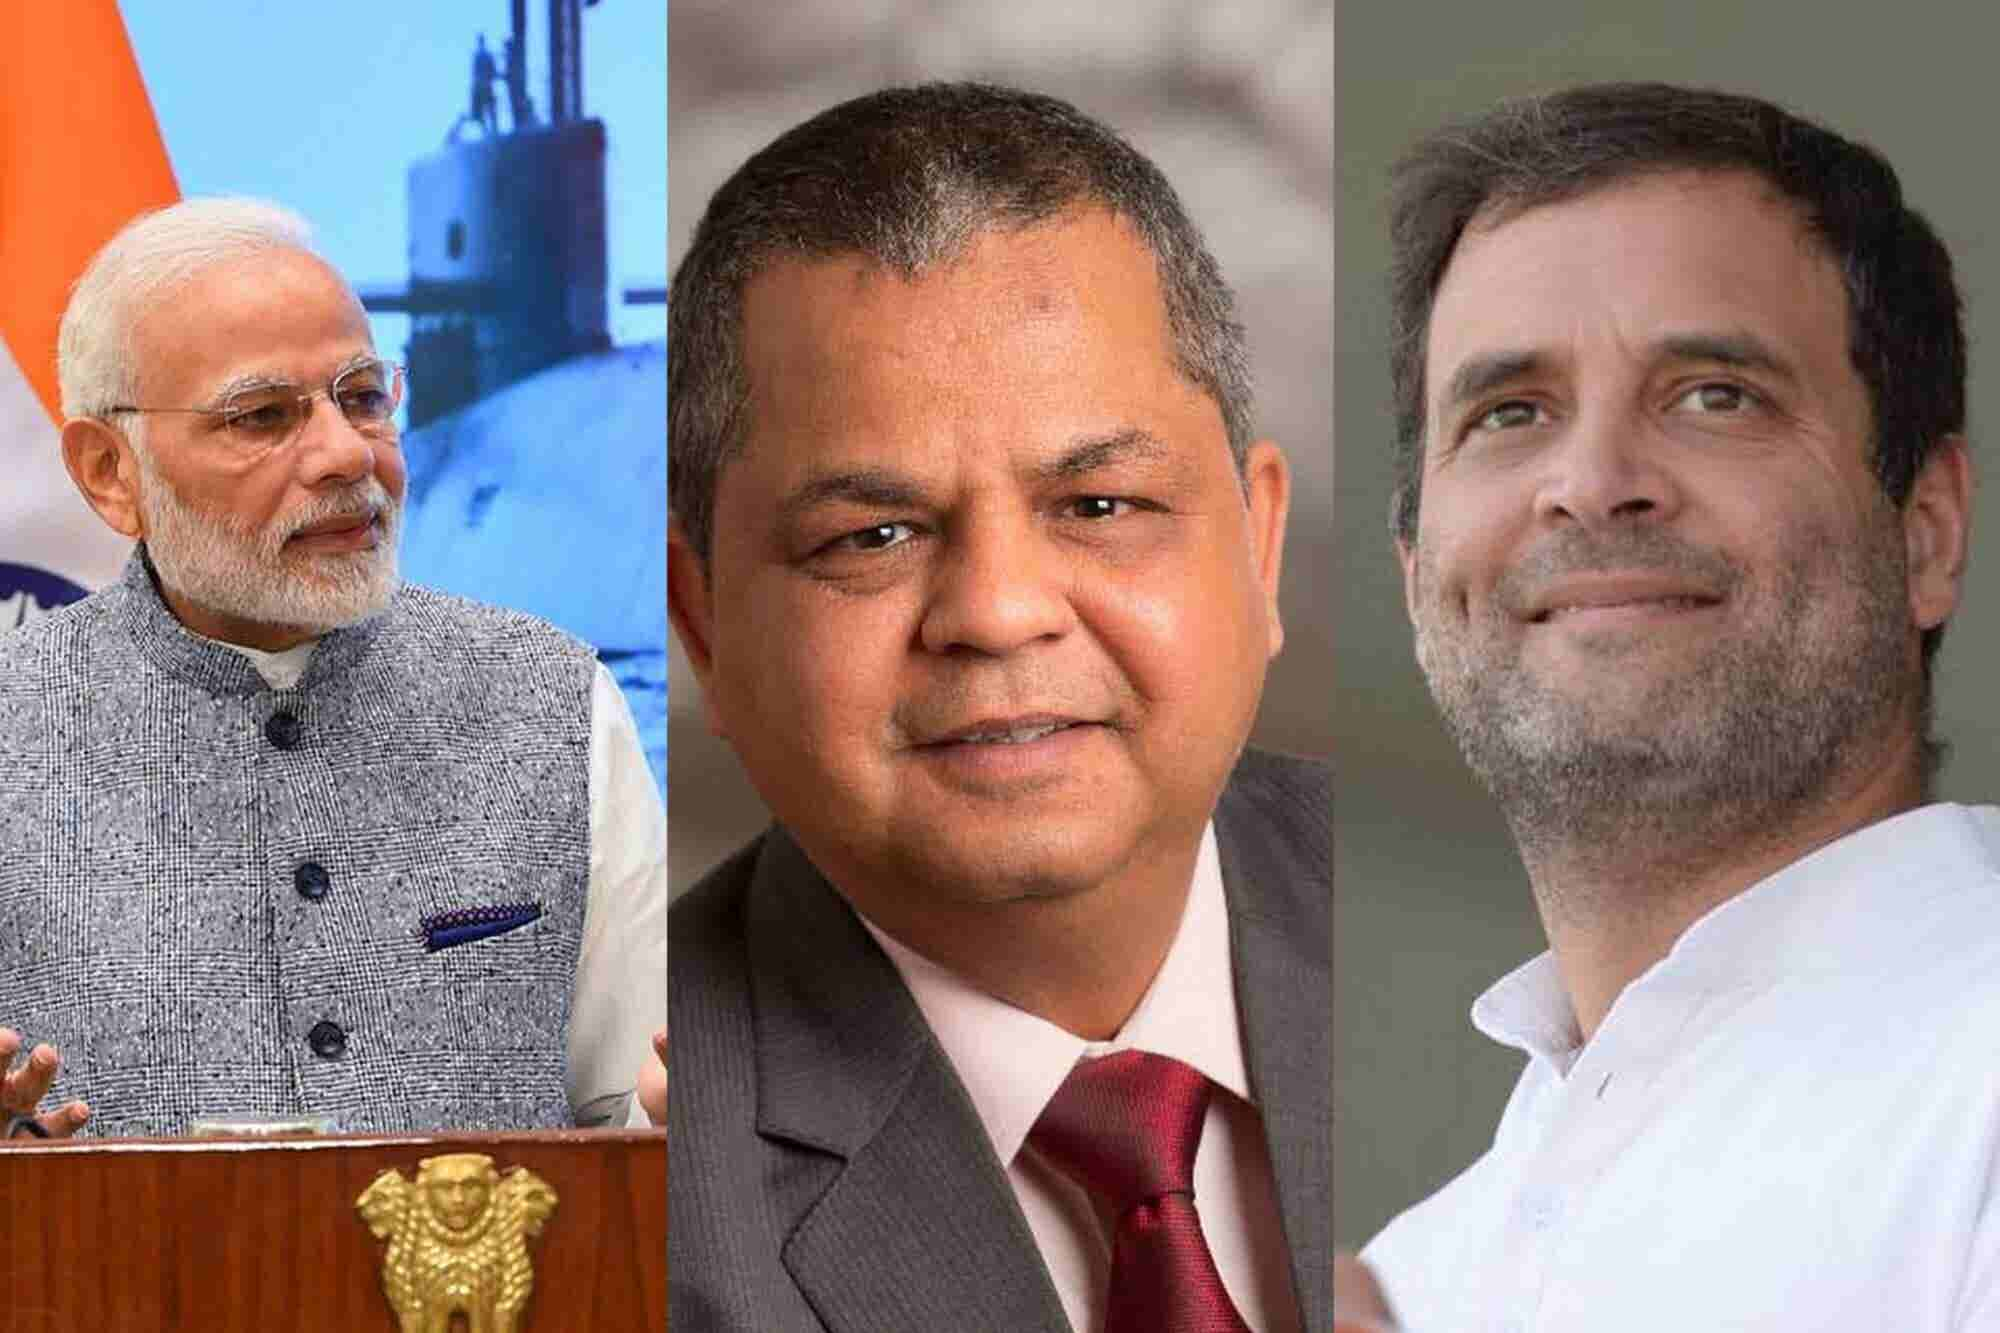 The Man Who Predicted 2014 Indian Election Reveals Who Will Take The Throne In 2019